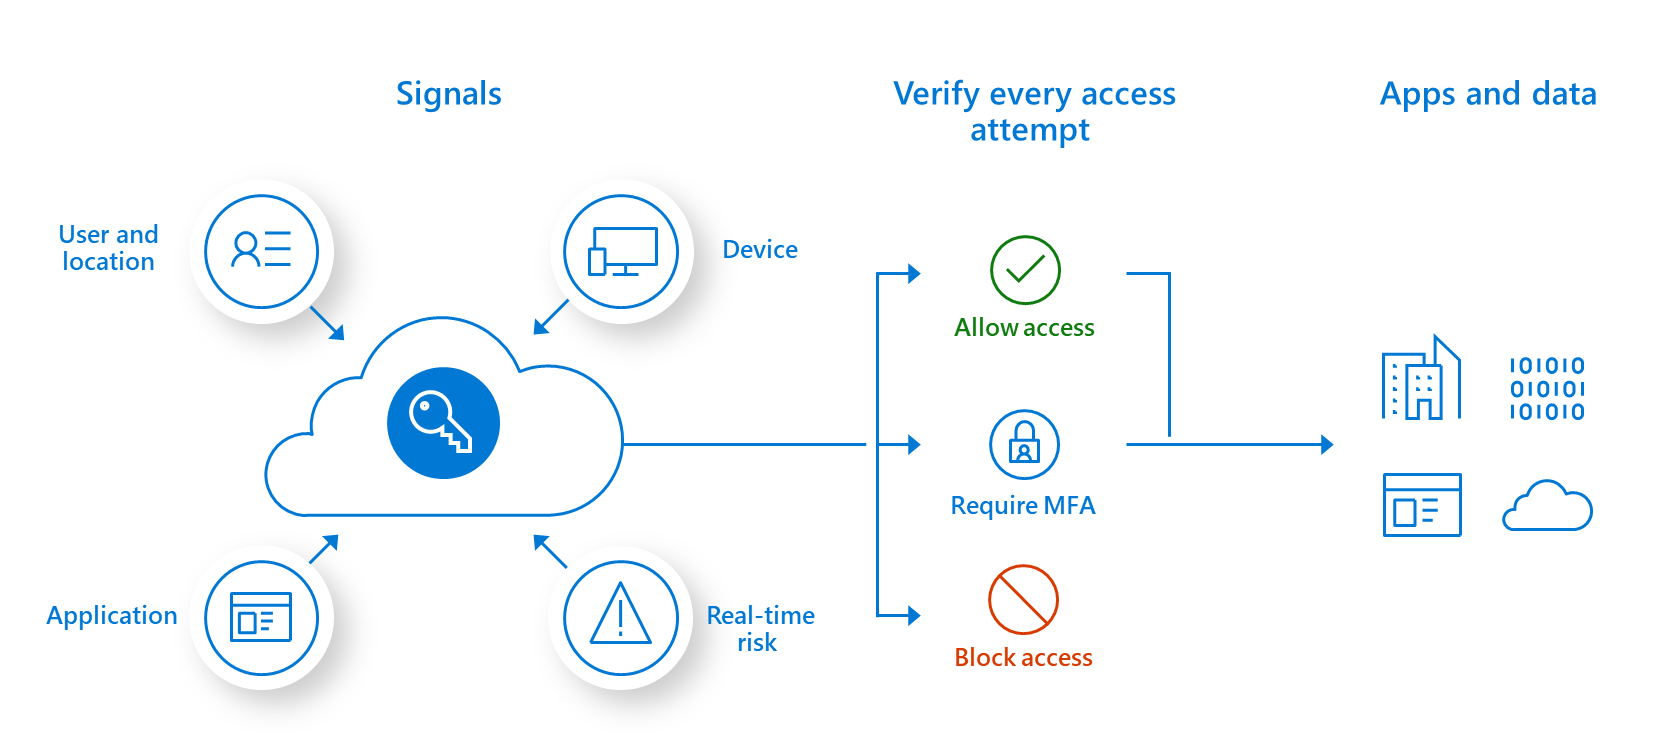 Infographic outlining conditional access. Signals (user location, device, real-time risk, application), Verify every access attempt (allow access, require MFA, or block access), and Apps and data.